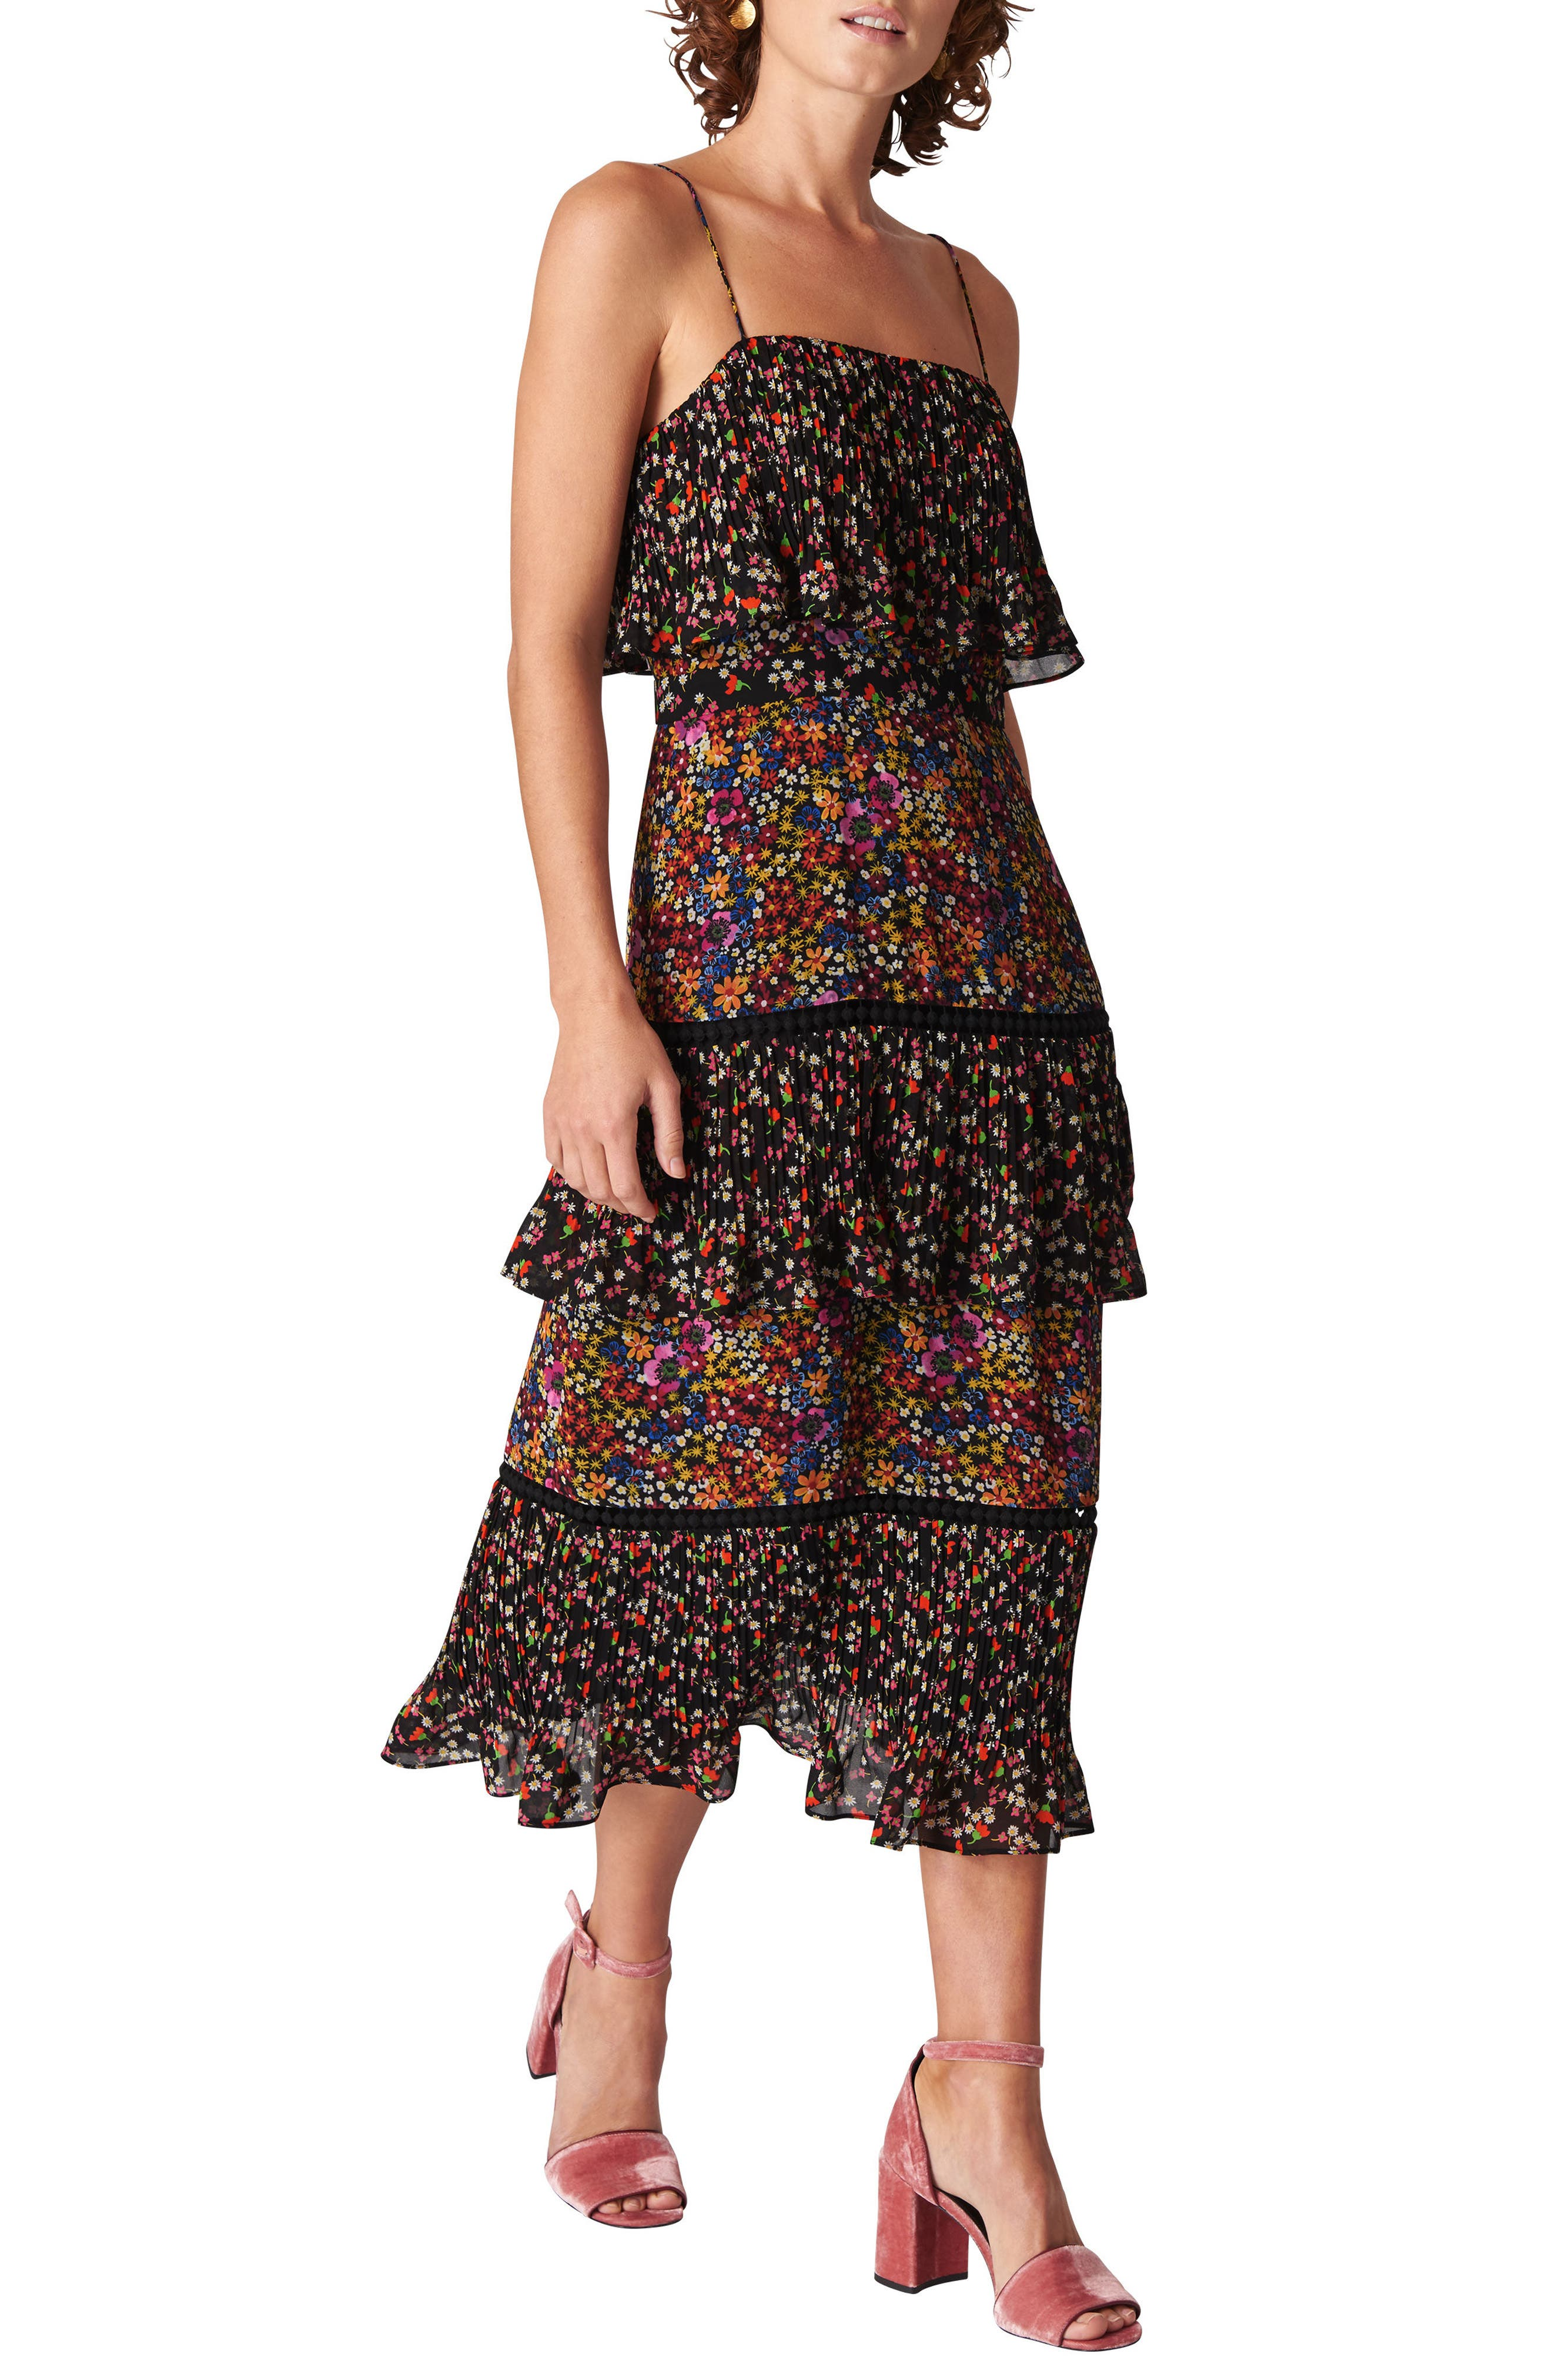 Skylar Peony Print Tiered Dress,                             Main thumbnail 1, color,                             Black/ Multi